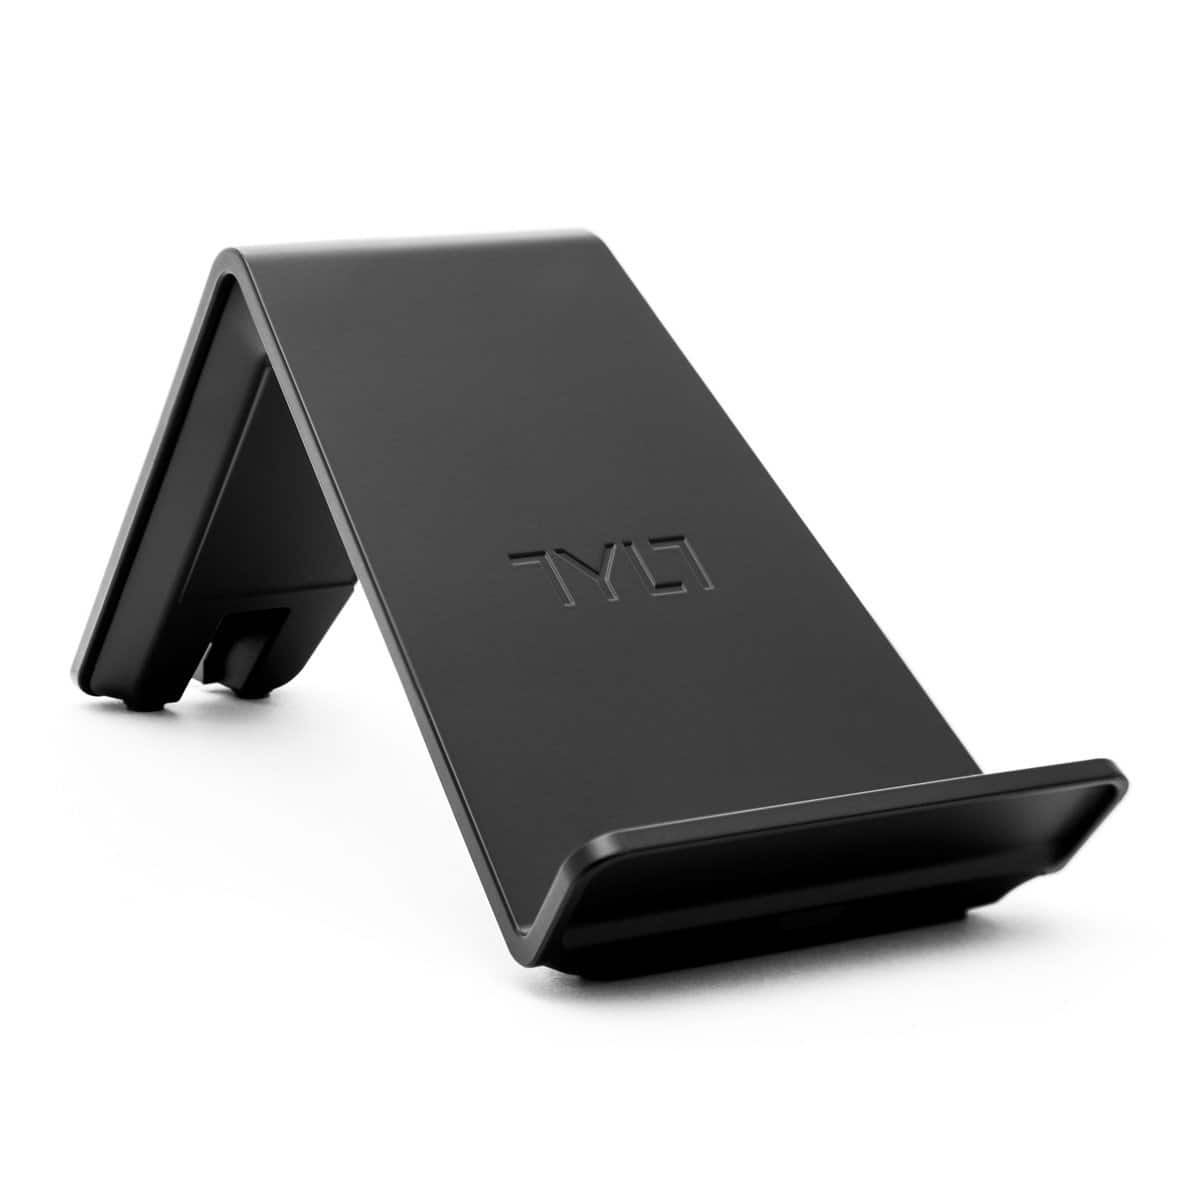 TYLT Vu Qi Wireless Charger (Black or Blue)  $30 + Free Store Pickup